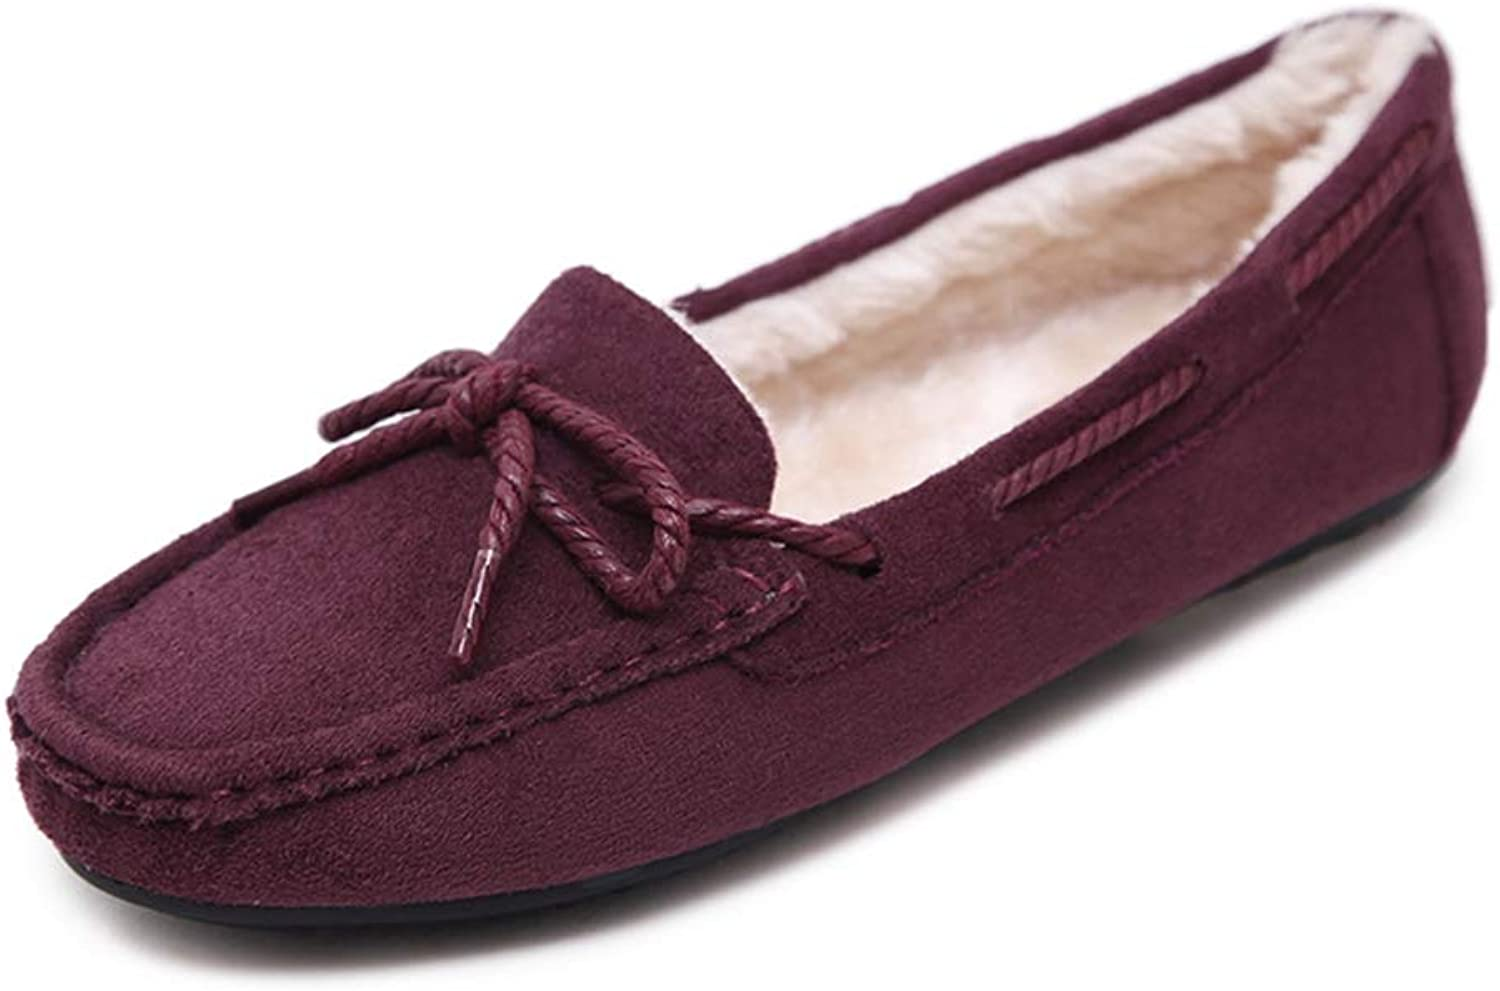 T-JULY Winter Warm Flats Ladies Loafers Women Slip on Round Toe Soft Bowknot Casual shoes Plush Low Heels